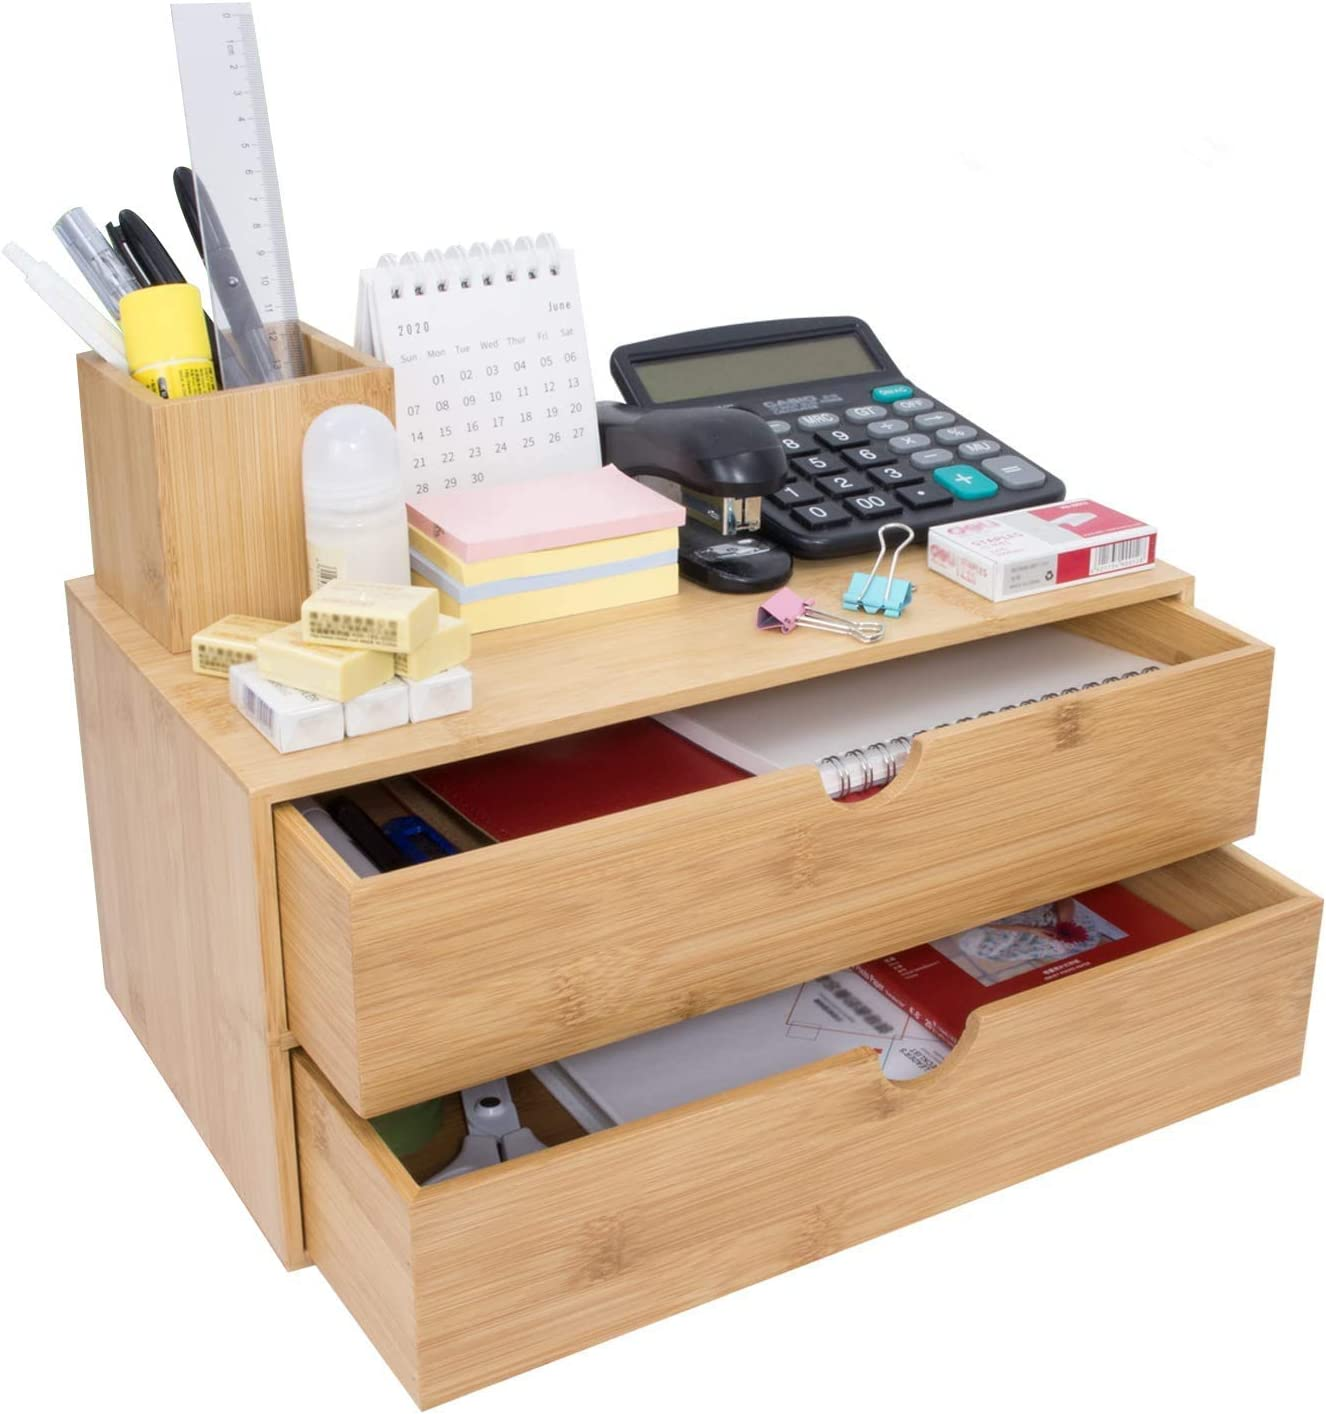 Bamboo Desk Organizer - Mini Bamboo Desk Drawer Tabletop Cosmetic Storage Organization for Office or Home (2 Drawer)